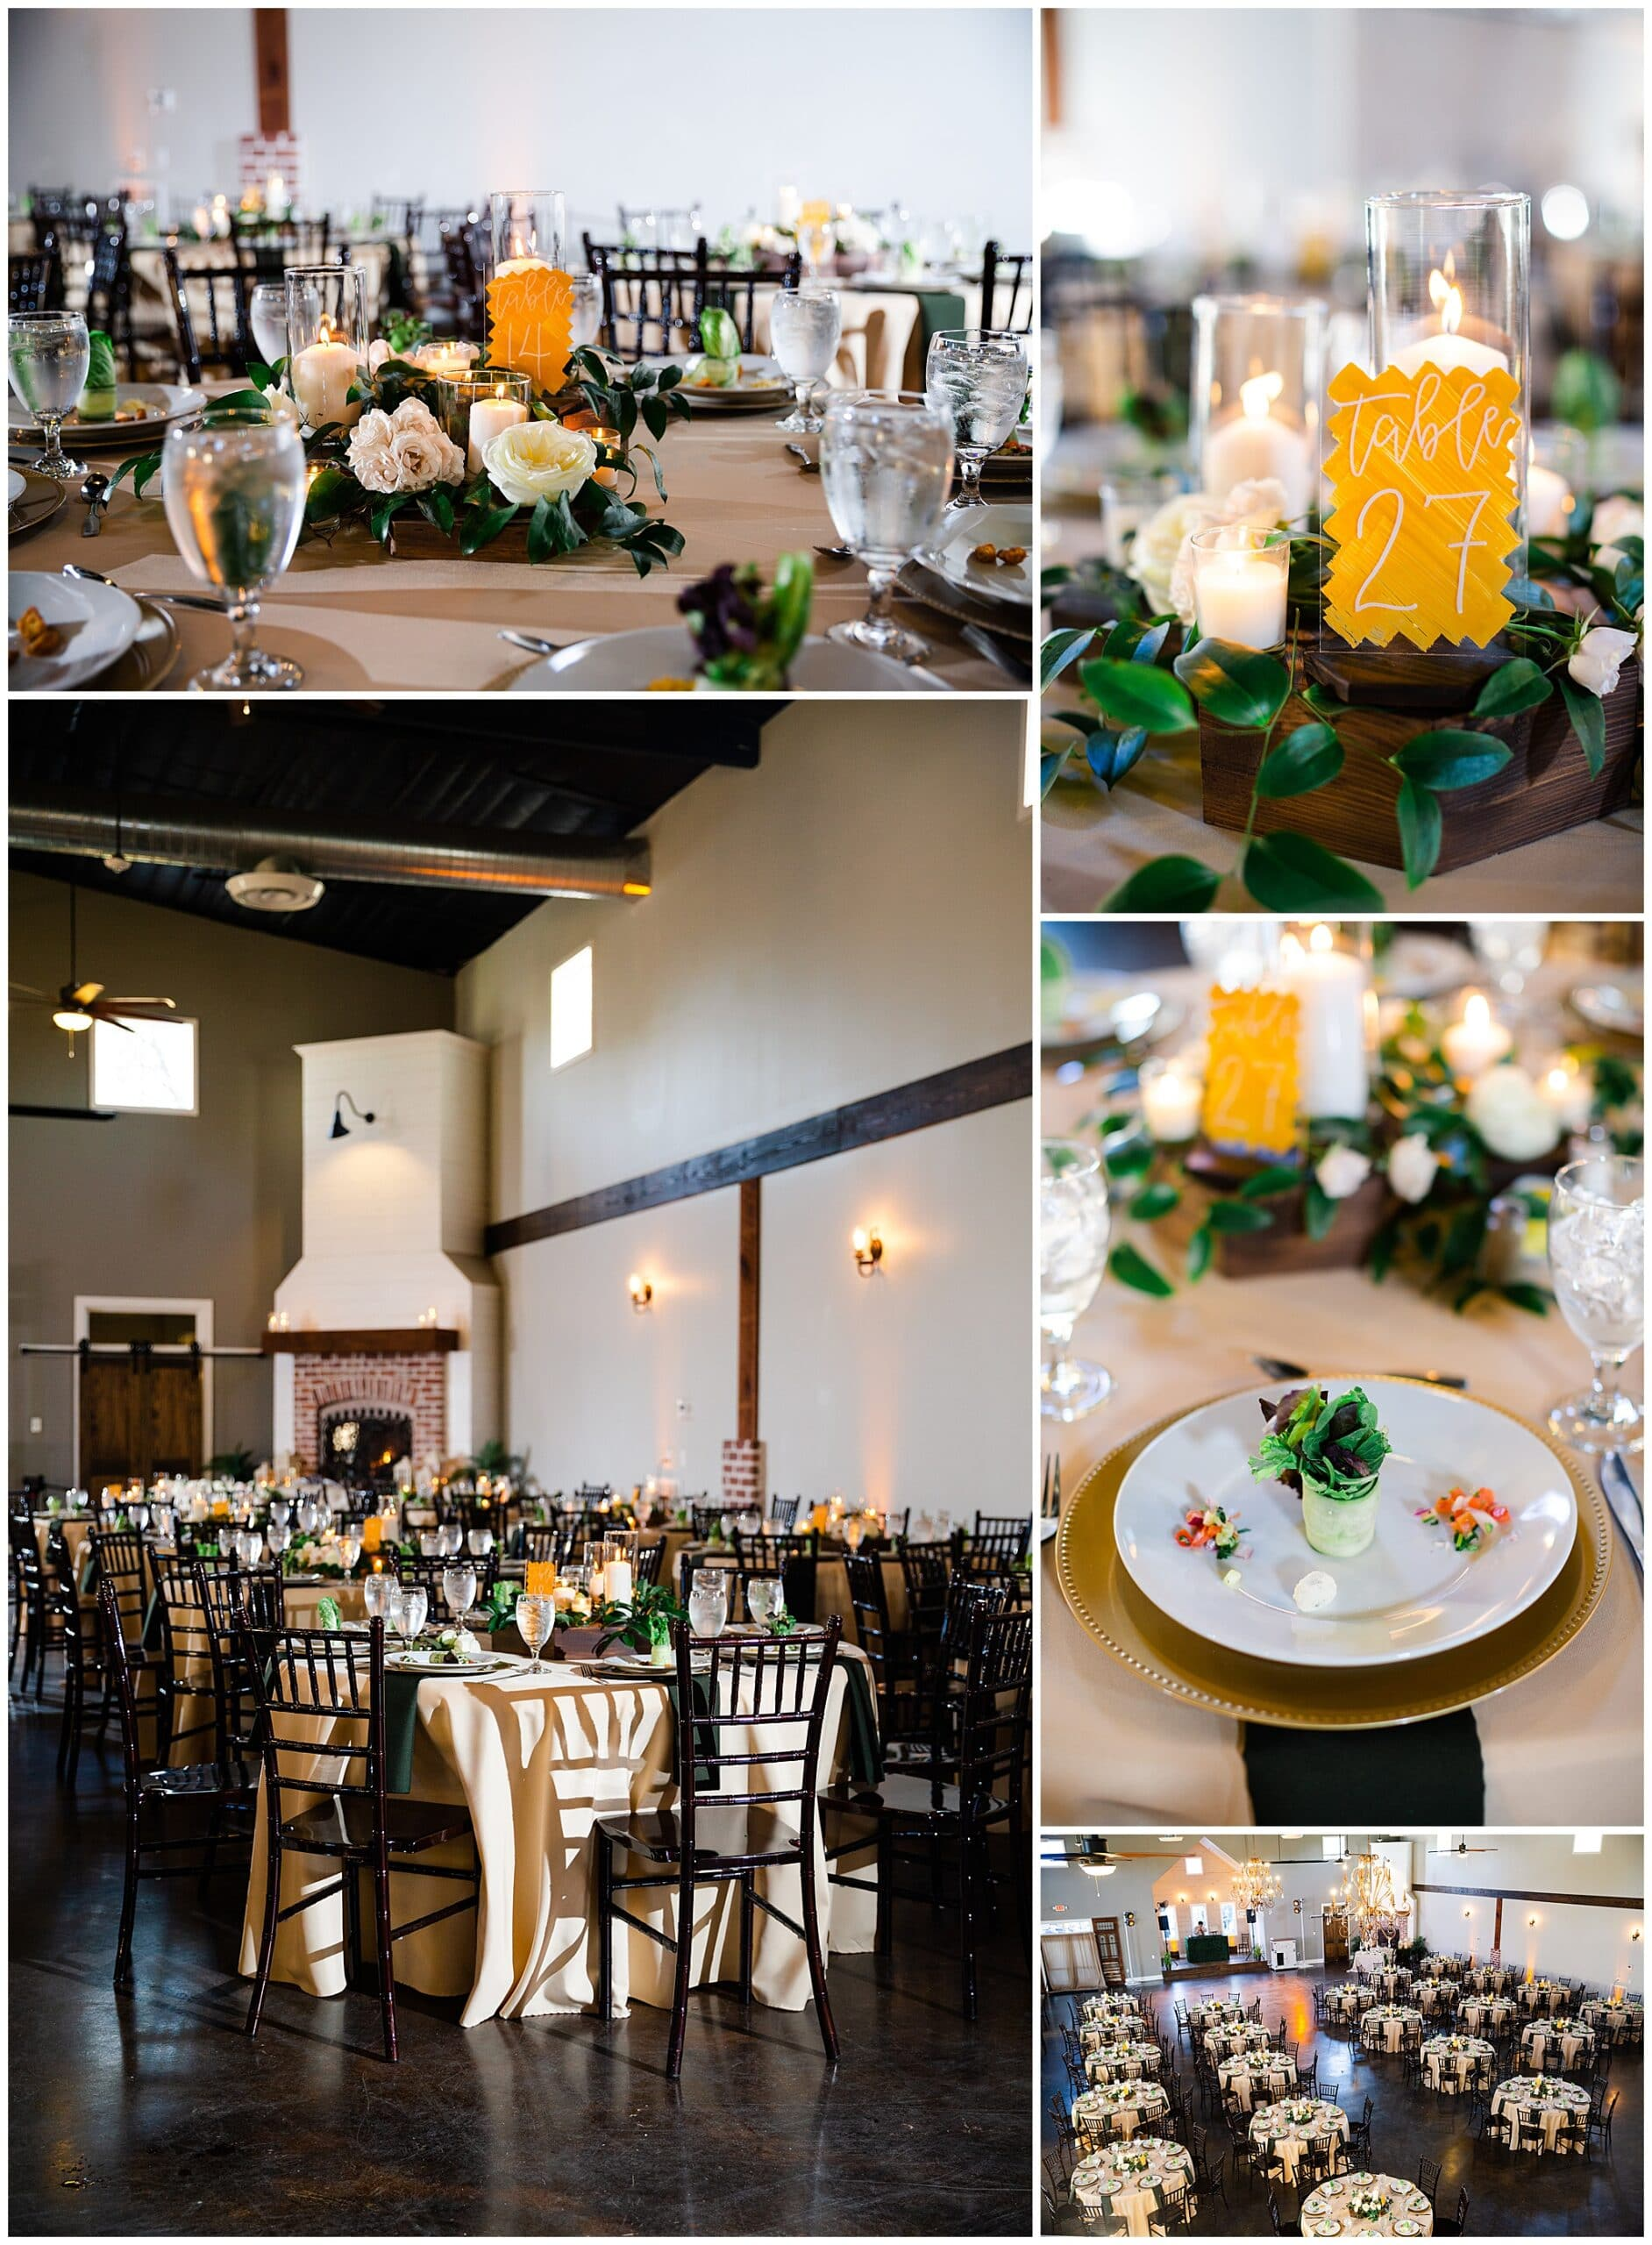 reception tables and table settings at Hochzeit Hall captured by Swish and Click Photography